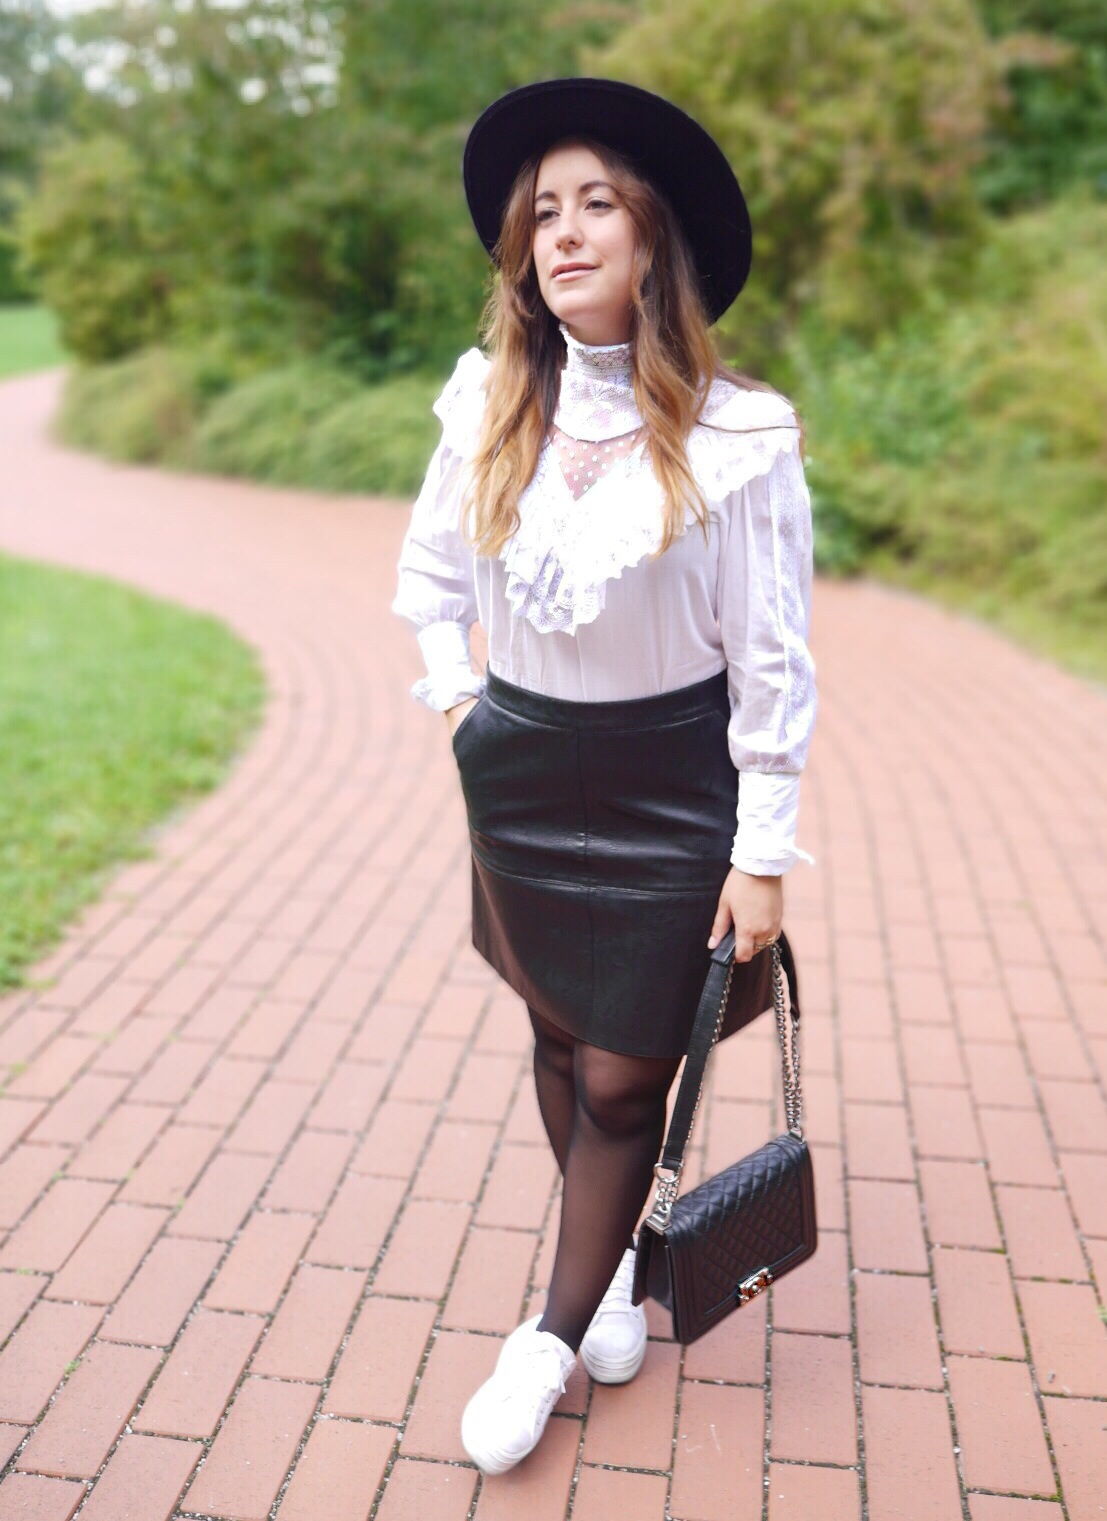 Street Style, egoblogger, fashion blogger, vintage shirt, lace shirt, Zara leather skirt, falda Zara cuero, zapatillas Victoria plataforma, Chanel Boy